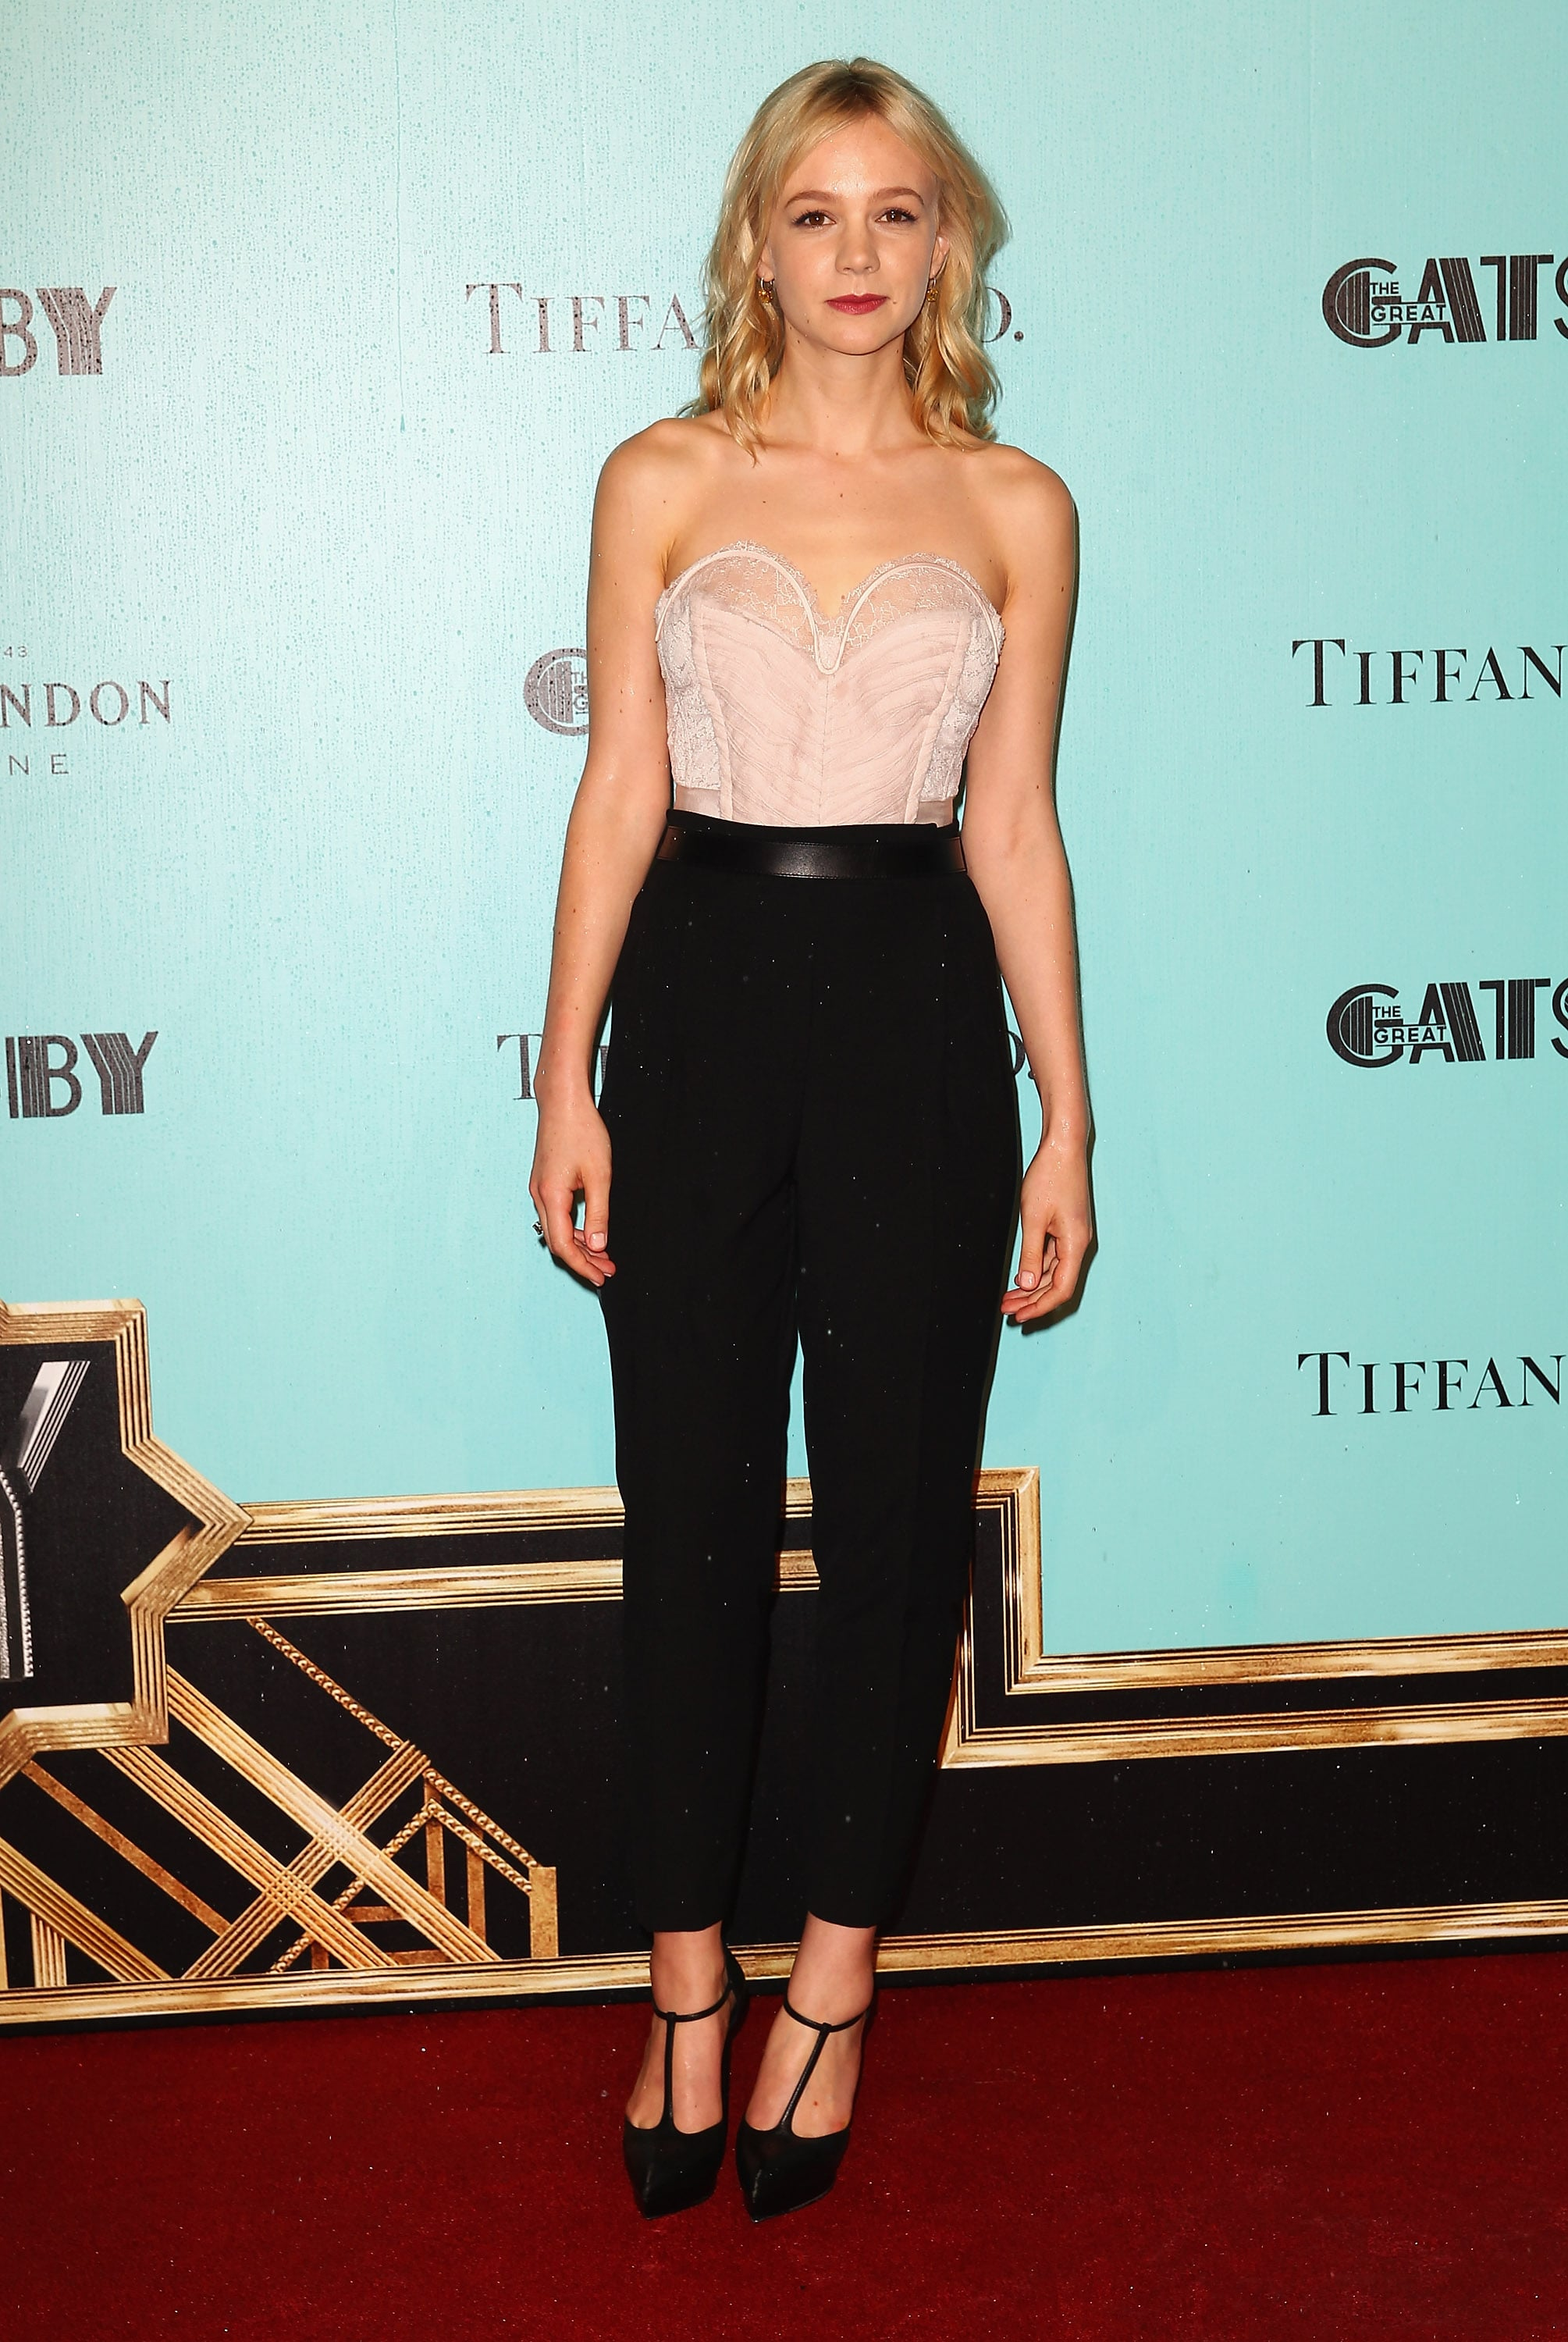 Carey Mulligan in a Nina Ricci Bustier at the 2013 The Great Gatsby Sydney Premiere